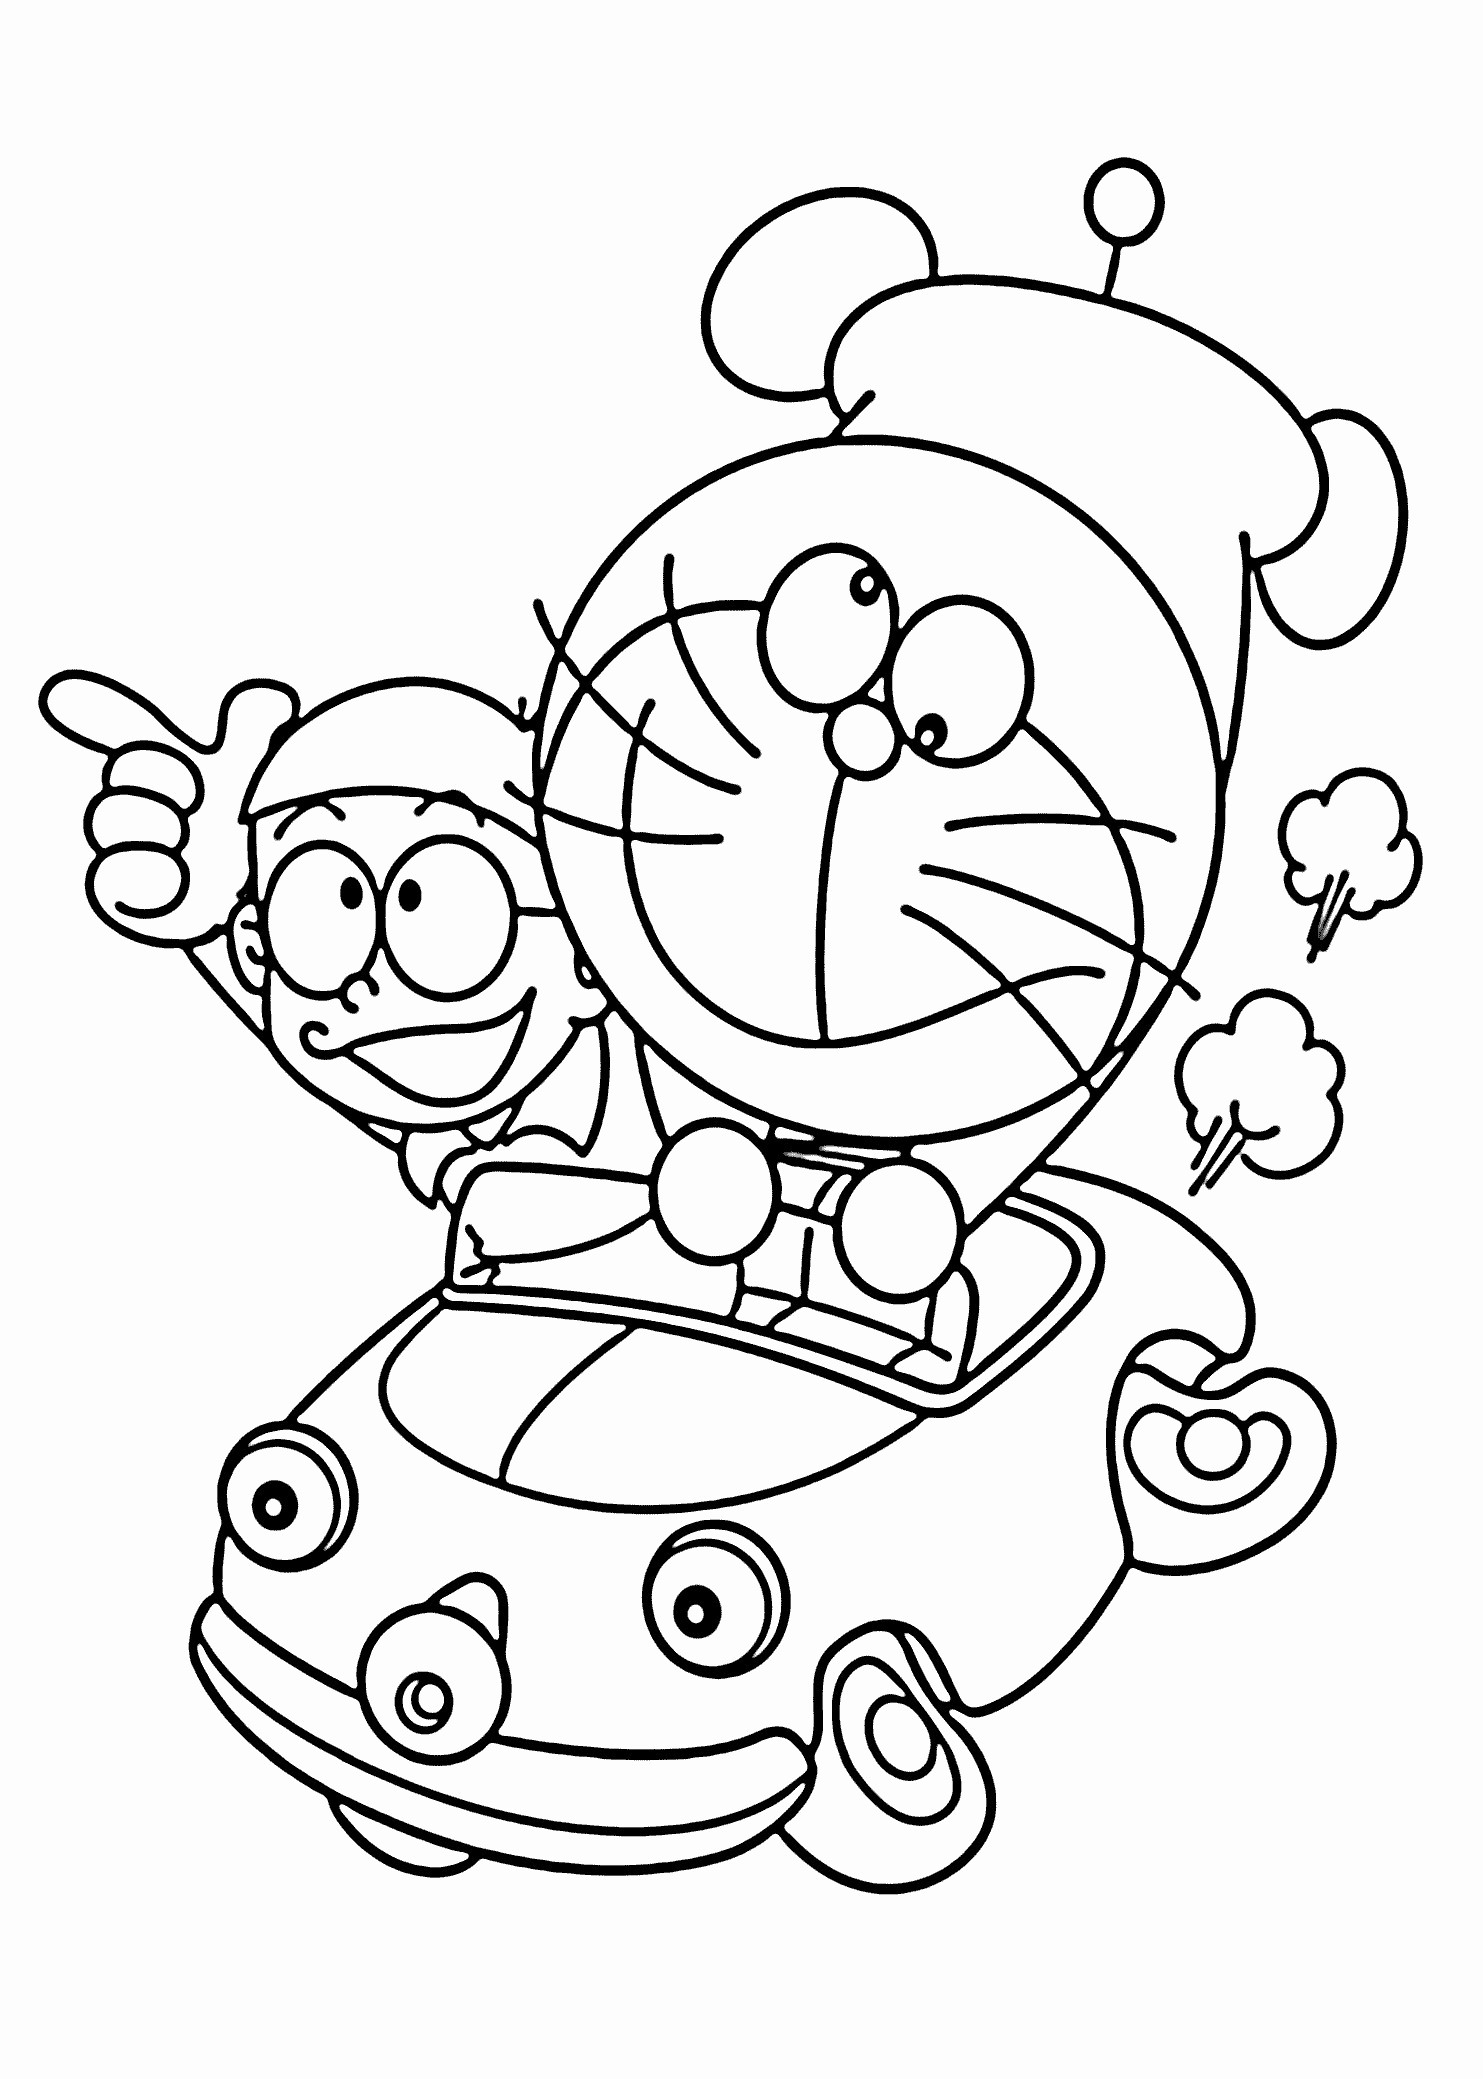 Santa Coloring Pages Crayola With Iron Giant The